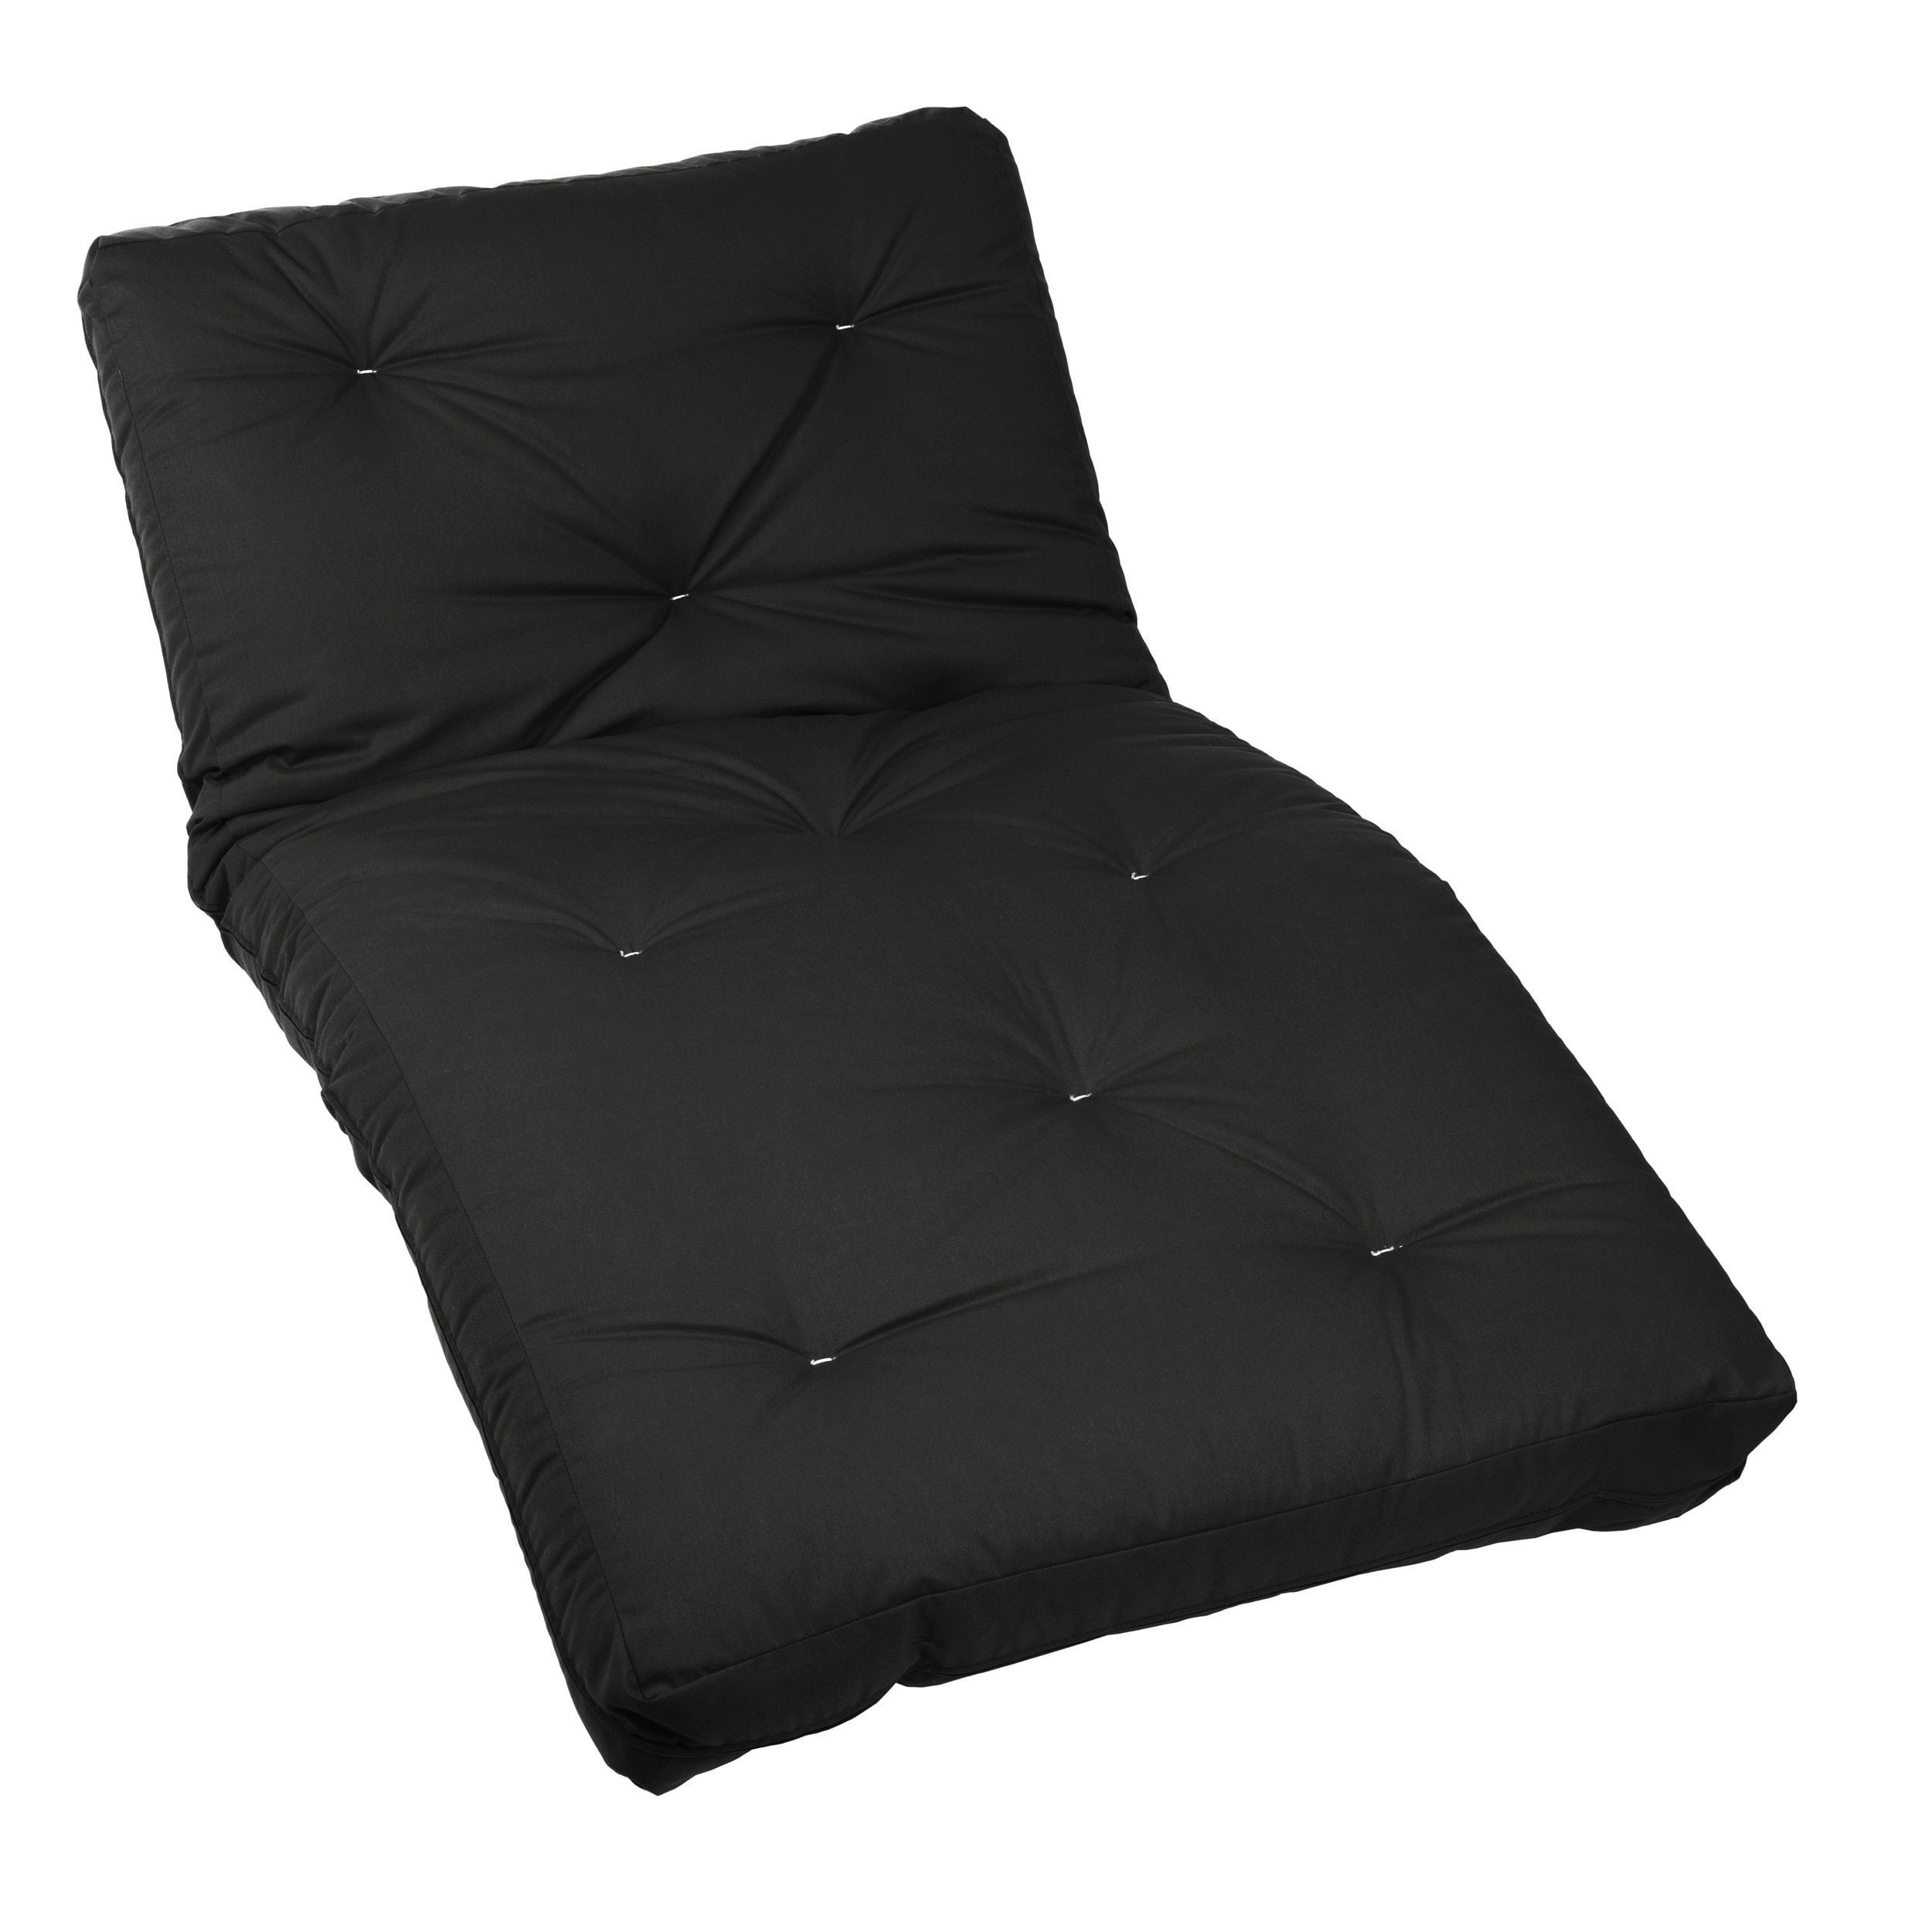 twin size black futon mattress  6 inch  twin size black futon mattress  6 inch    black futon futon      rh   pinterest